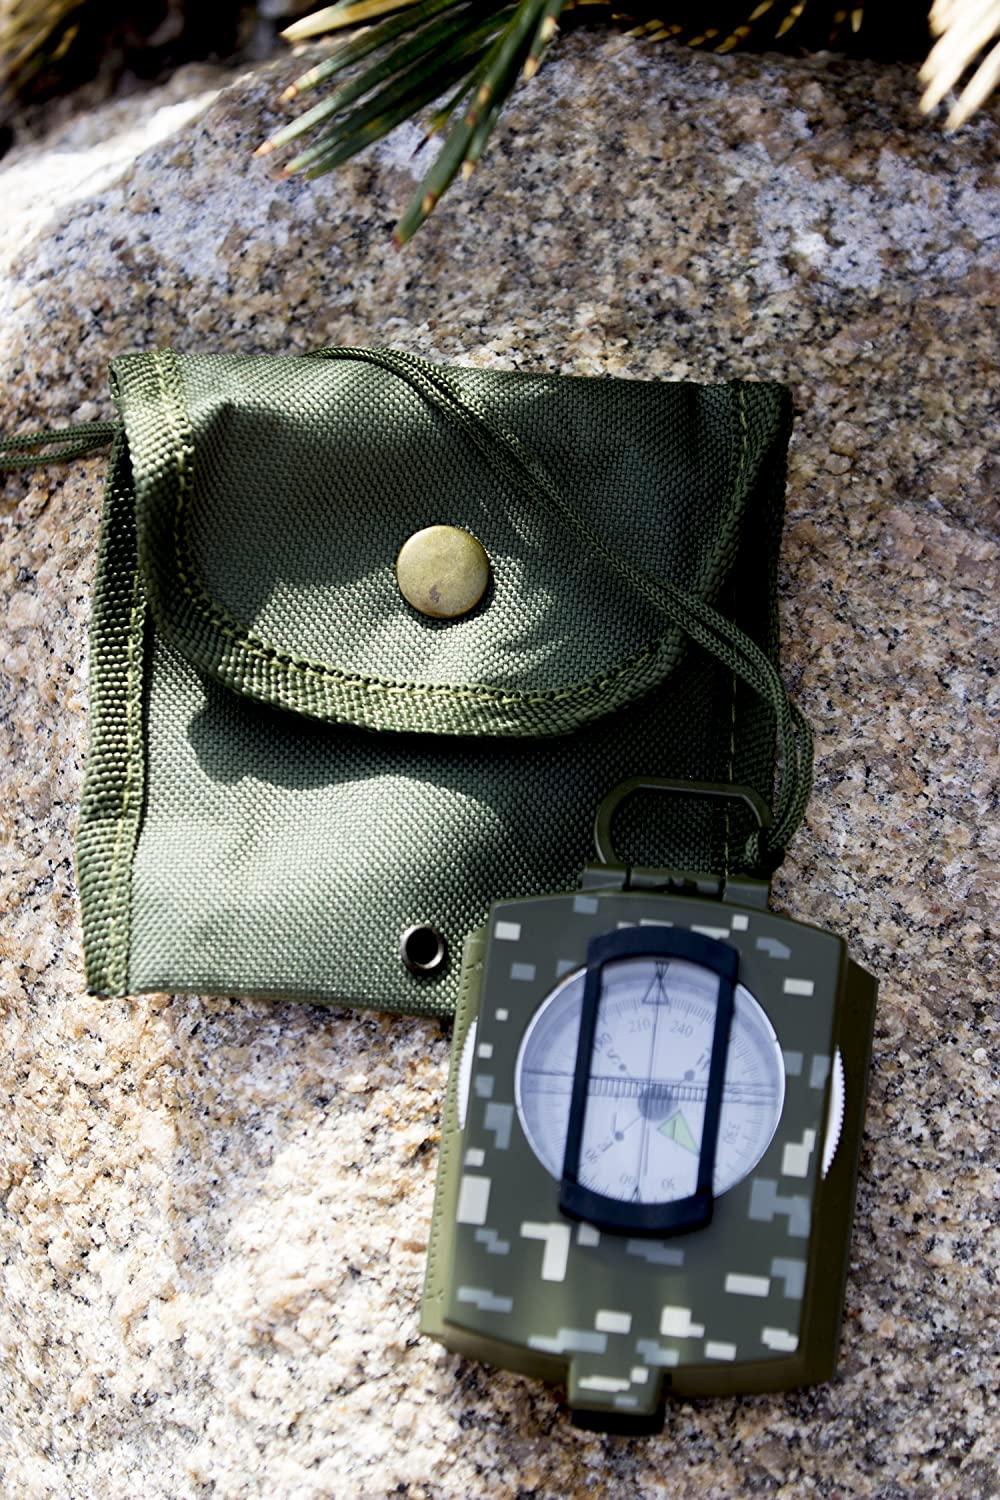 Under Control Tactical Best Sighting Compass for Camping Military Grade Survival /& Mapping Gear